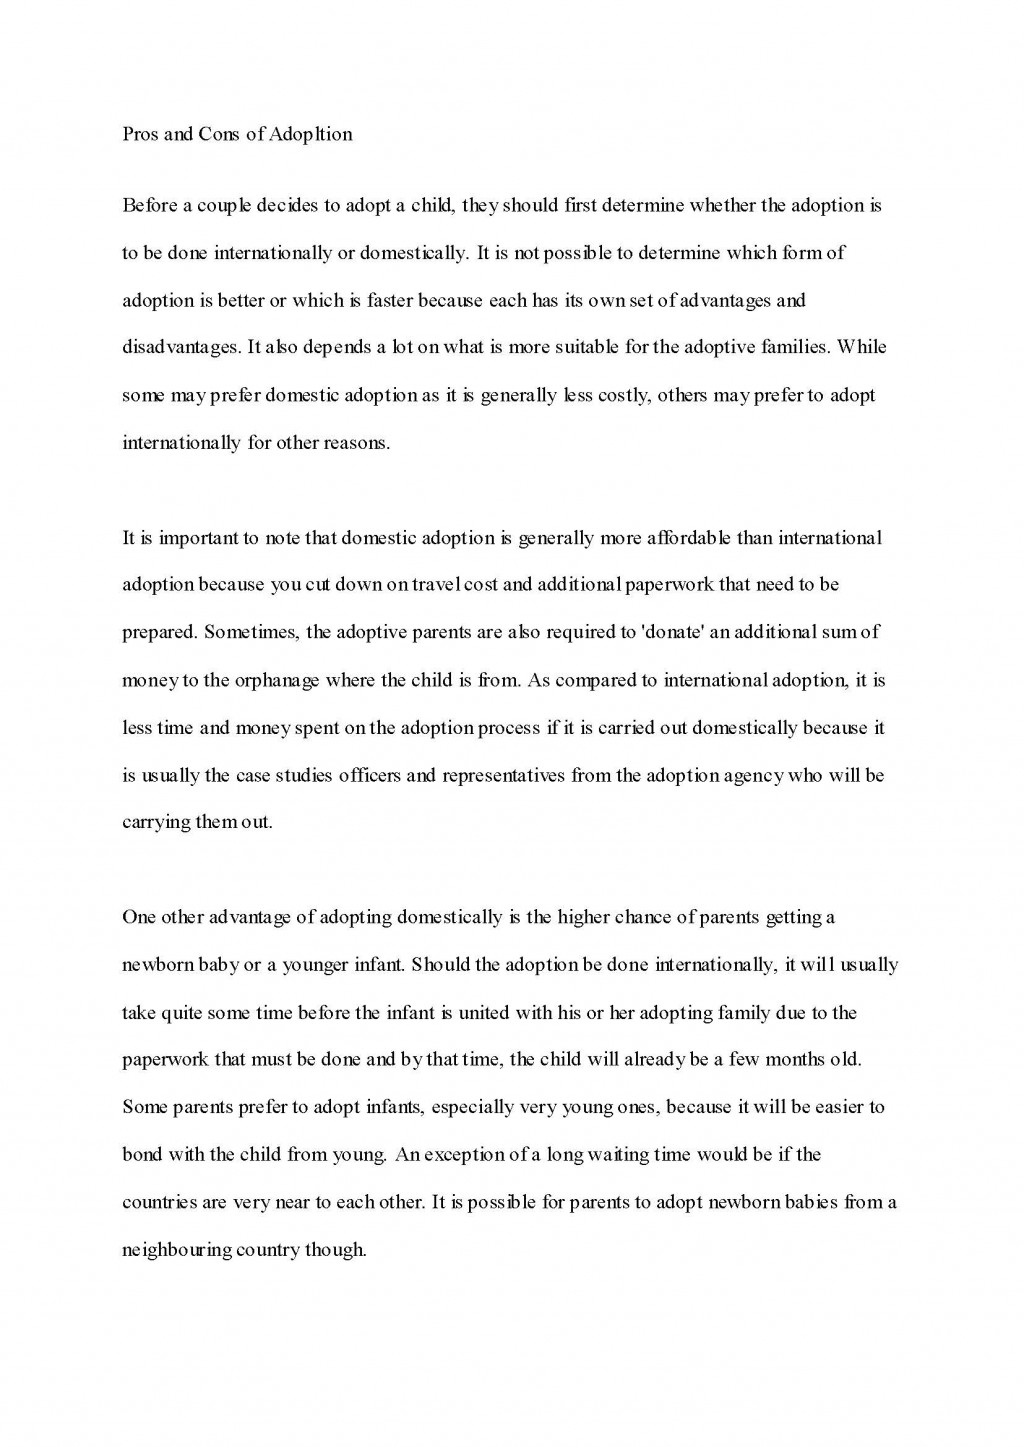 021 Adoption Essay Sample Example Help With Surprising My Me Introduction Sound Better Research Paper For Free Large